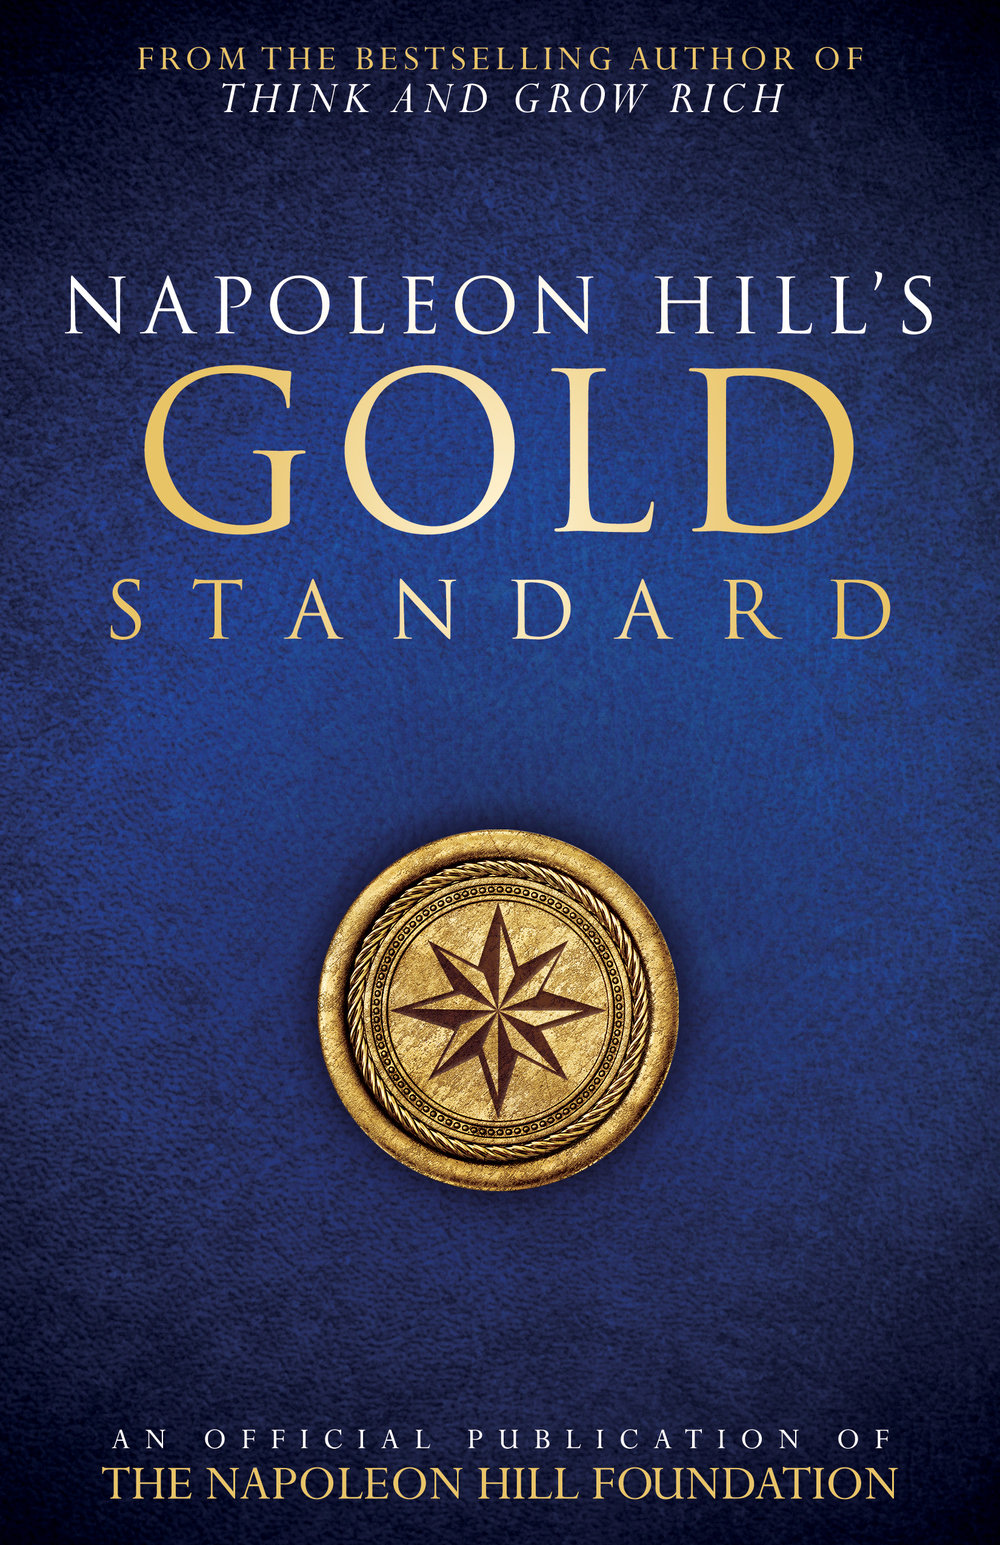 Napoleon Hill's Gold Standard - By napoleon hill